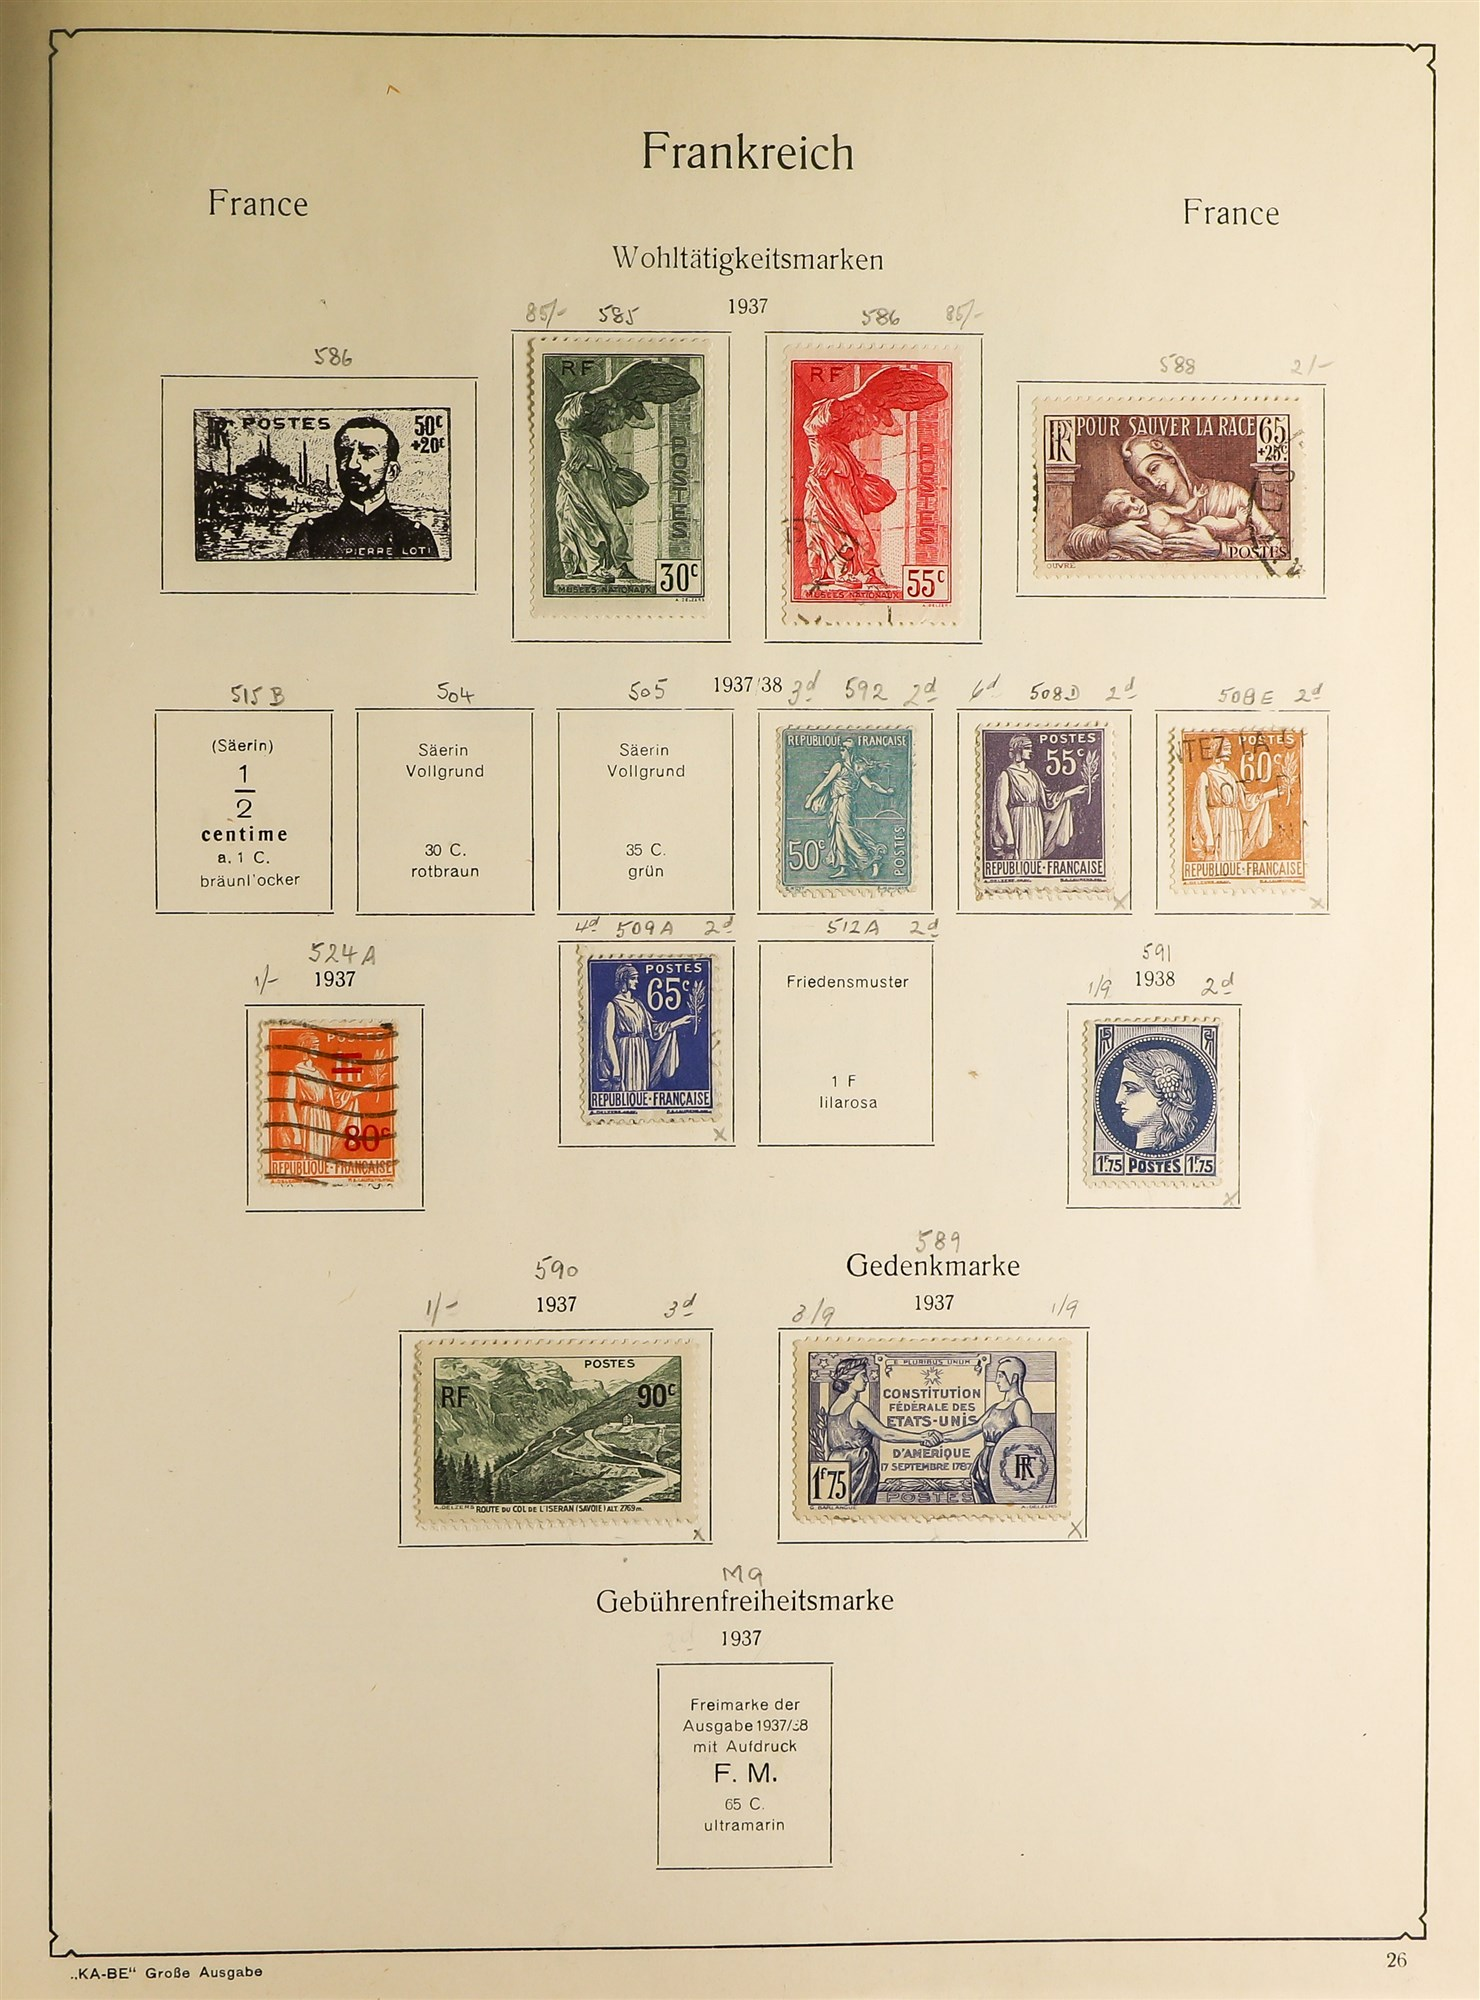 COLLECTIONS & ACCUMULATIONS FRANCE, GERMANY, SWITZERLAND IN TWO LARGE KA-BE ALBUMS with useful